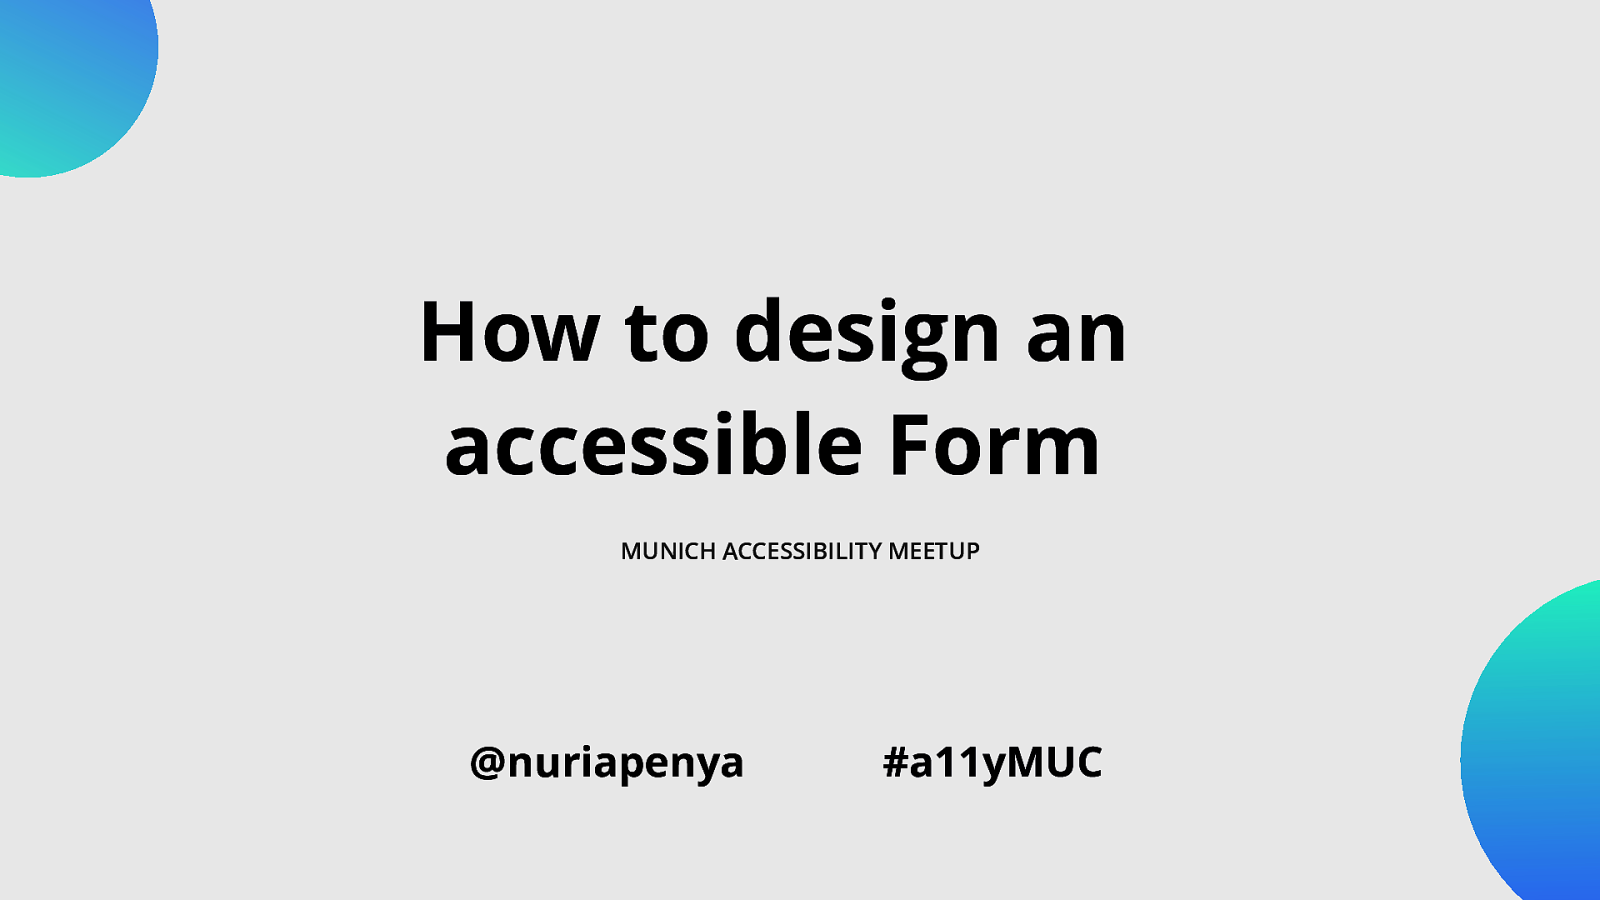 How to design an accessible form